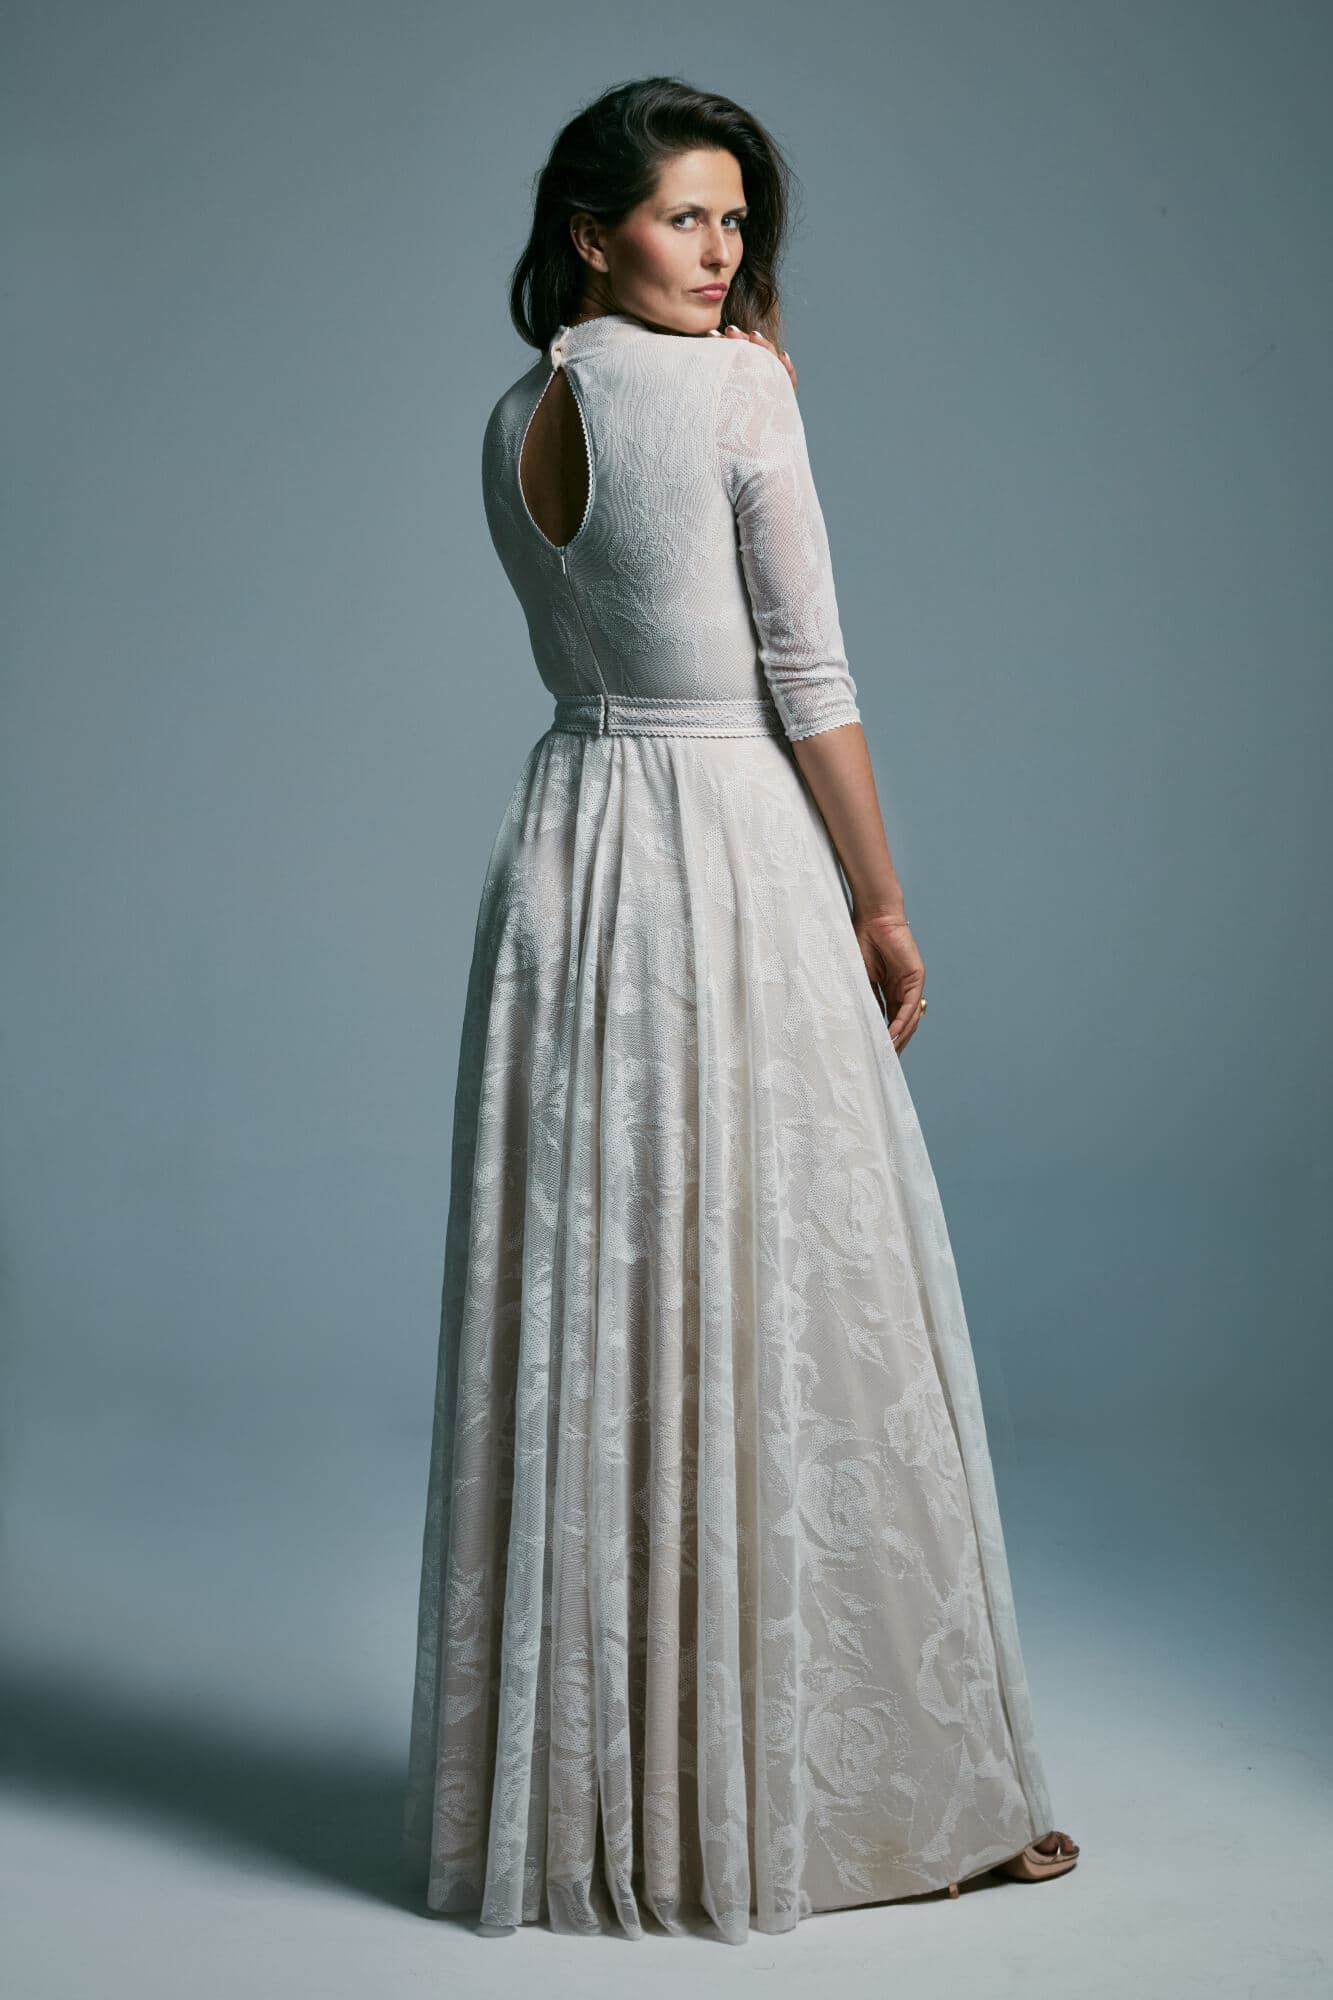 Victorian style wedding dress with 3/4 sleeves and stand-up collar Porto 37